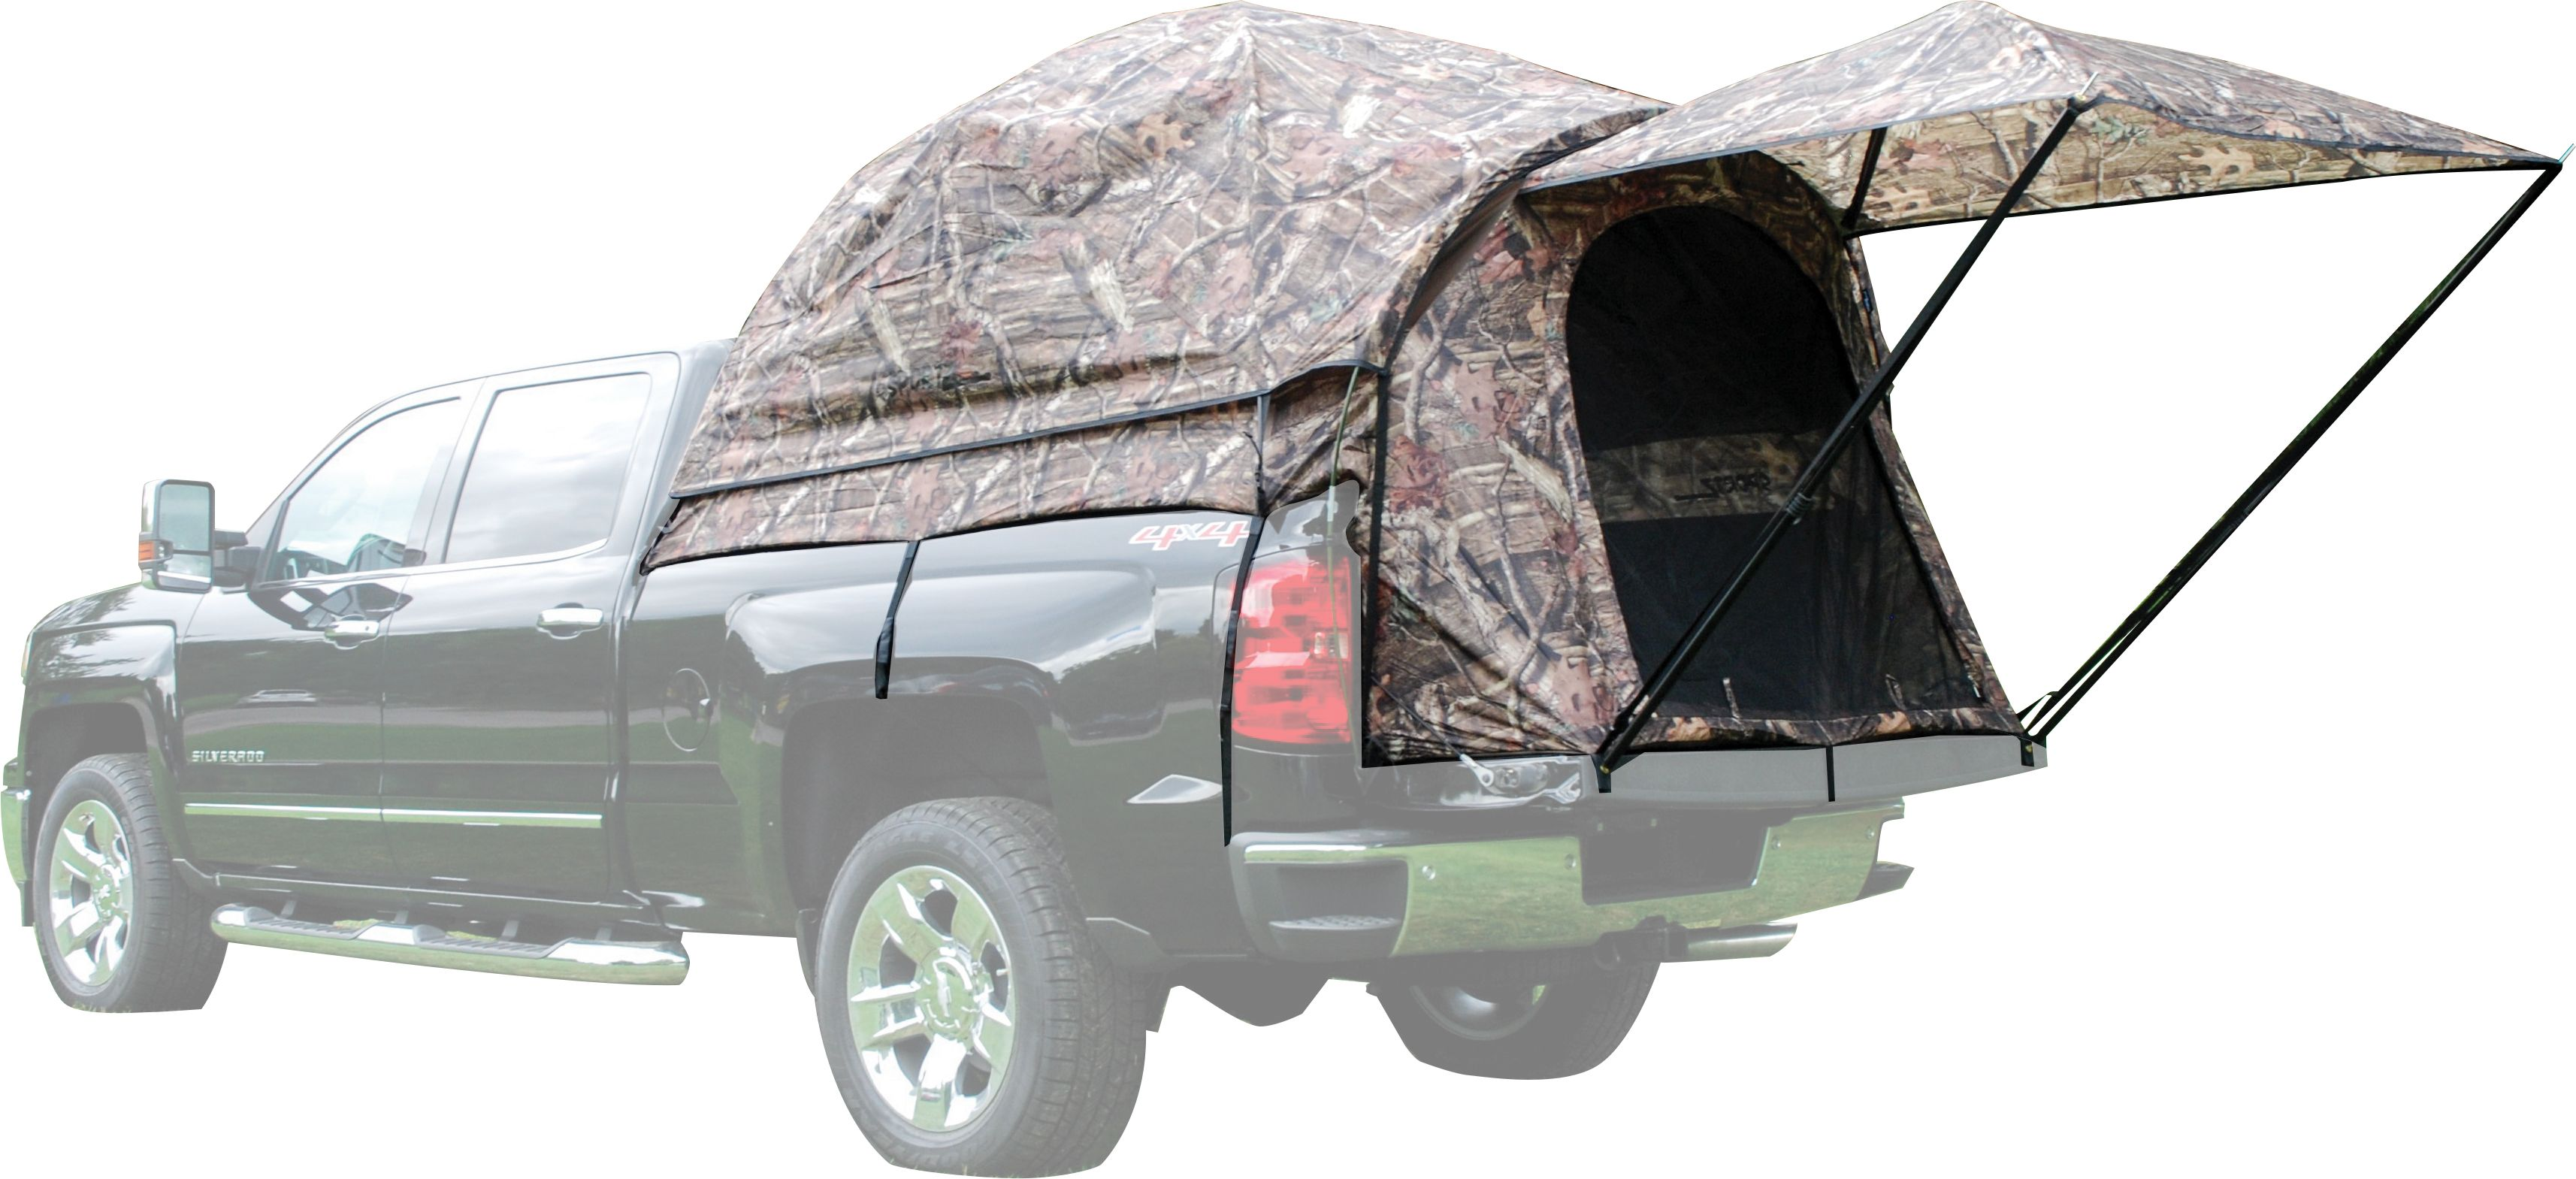 Napier outdoors 57 series sportz camo 2 person truck tent tents and tarps cabin tents at academy sports